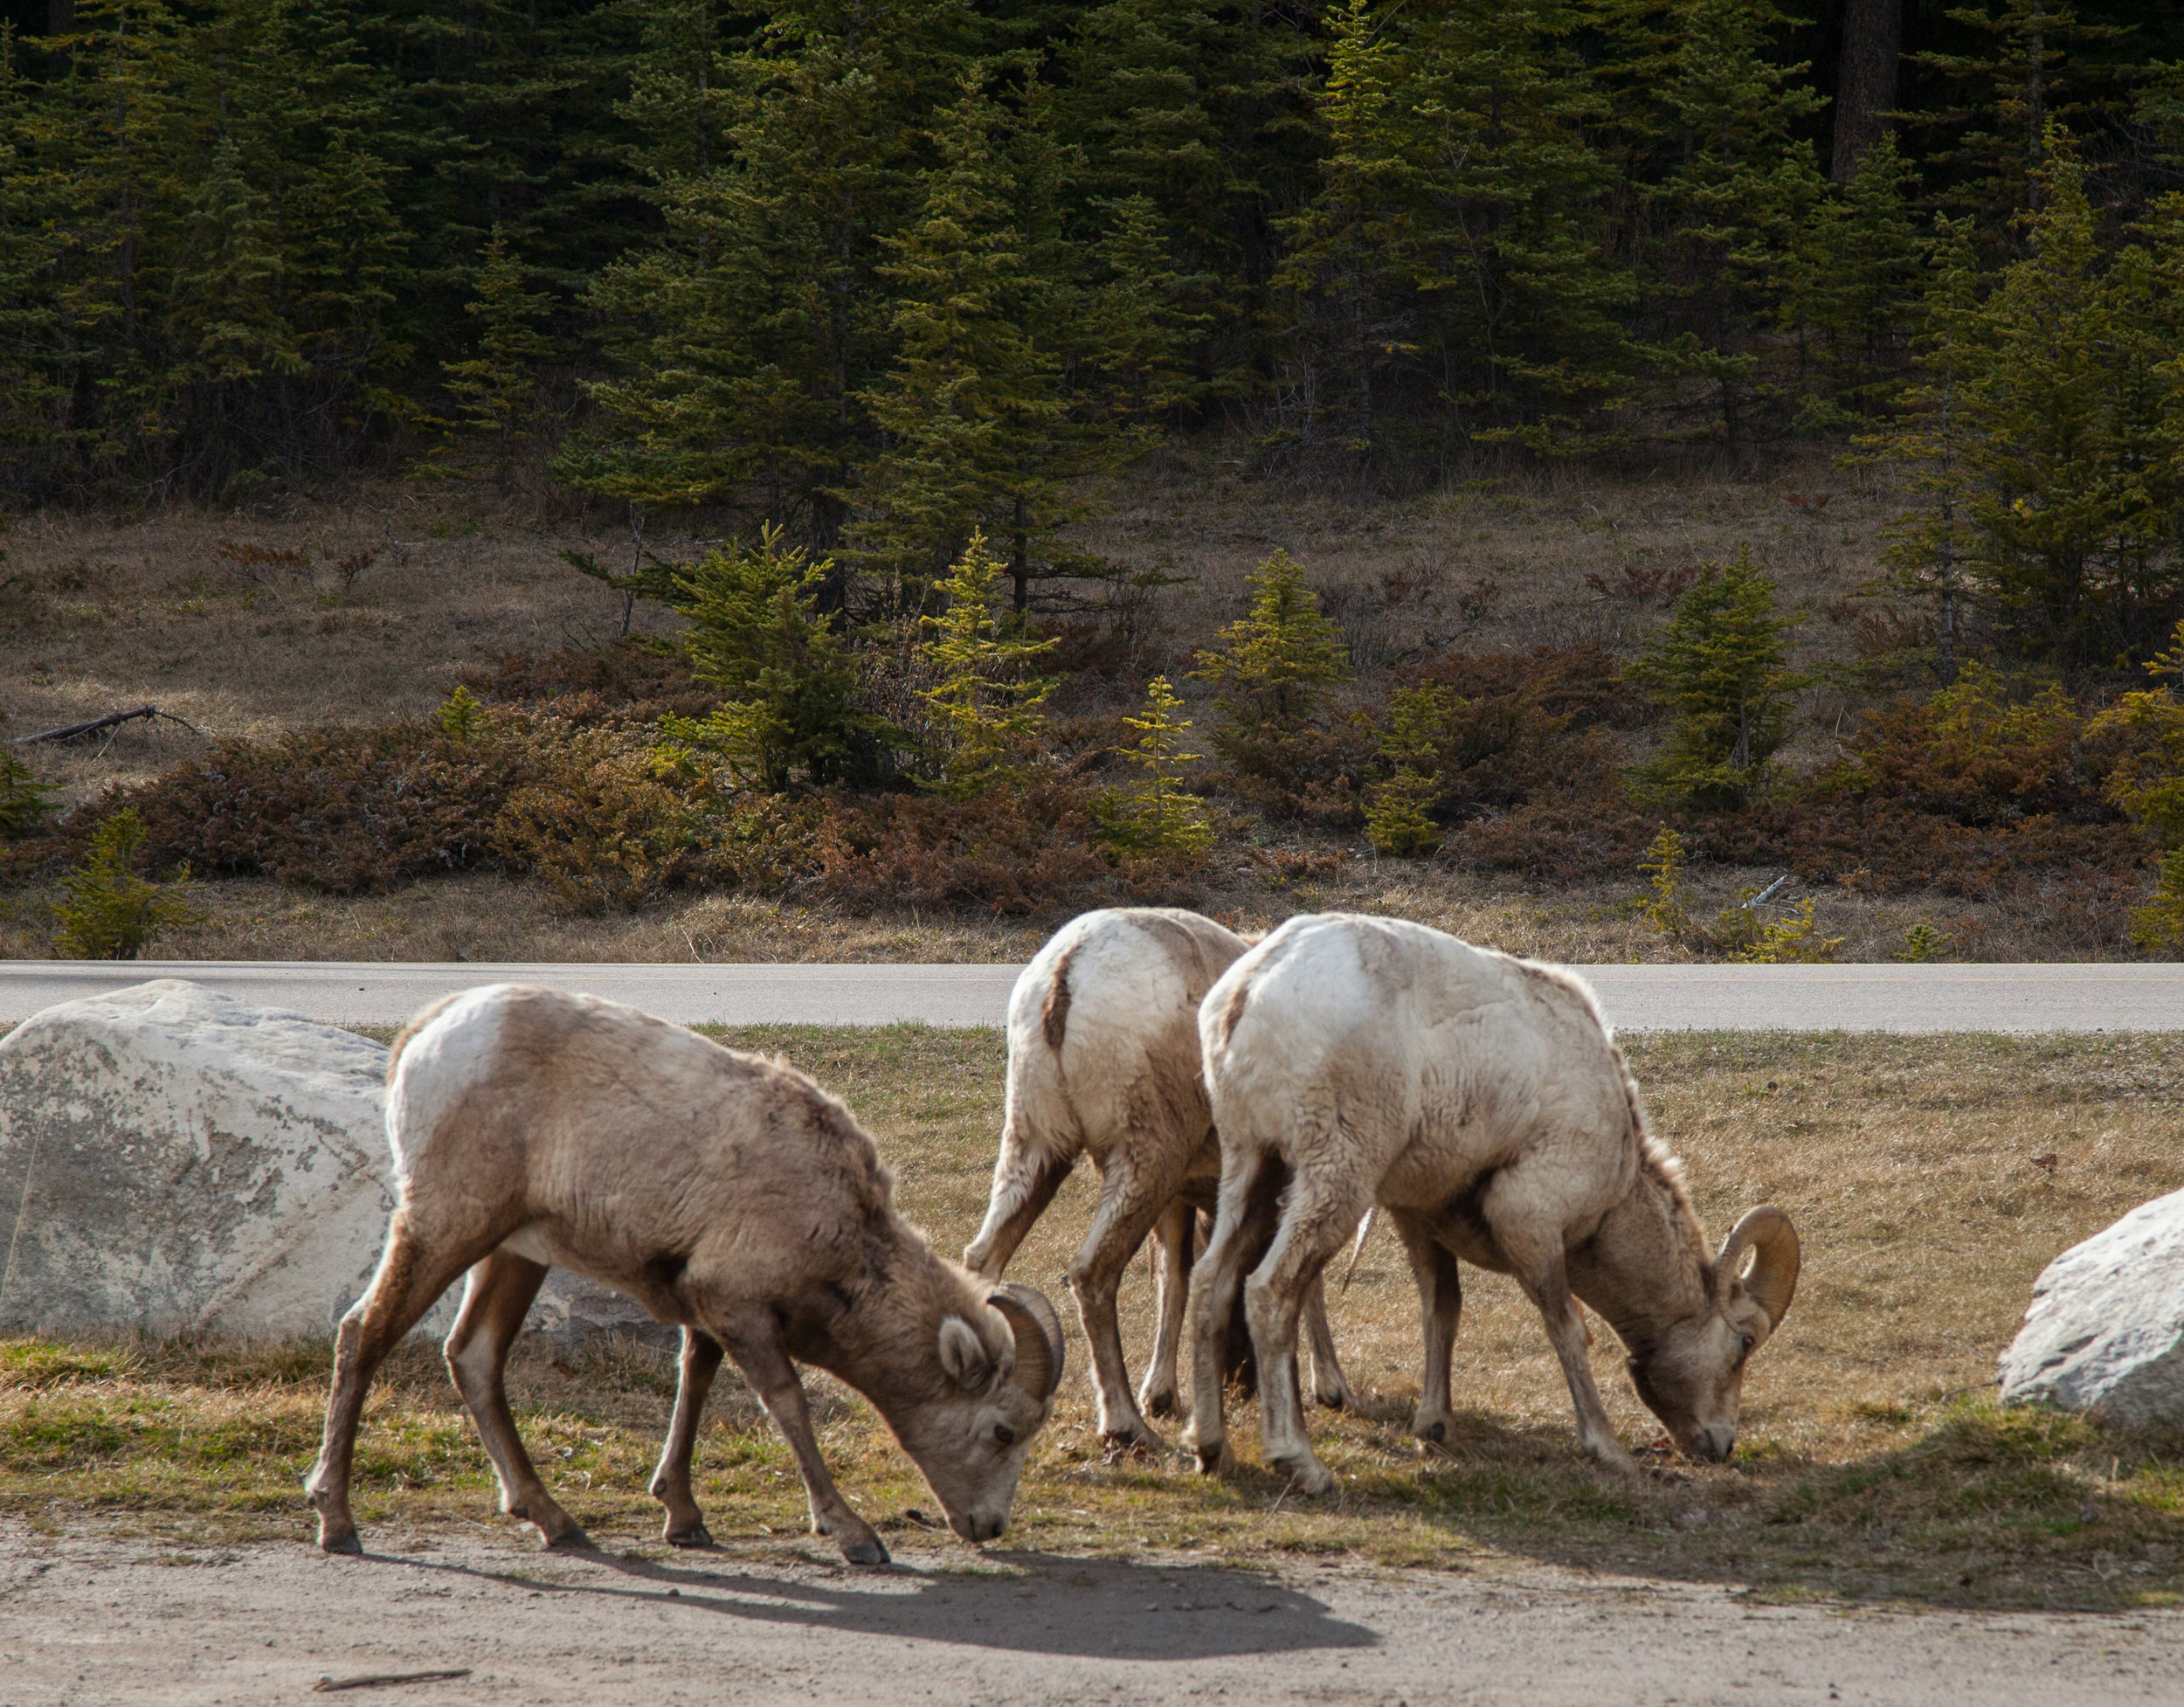 Big Horn Sheep chilling in the parking lot at Two Jack Lake